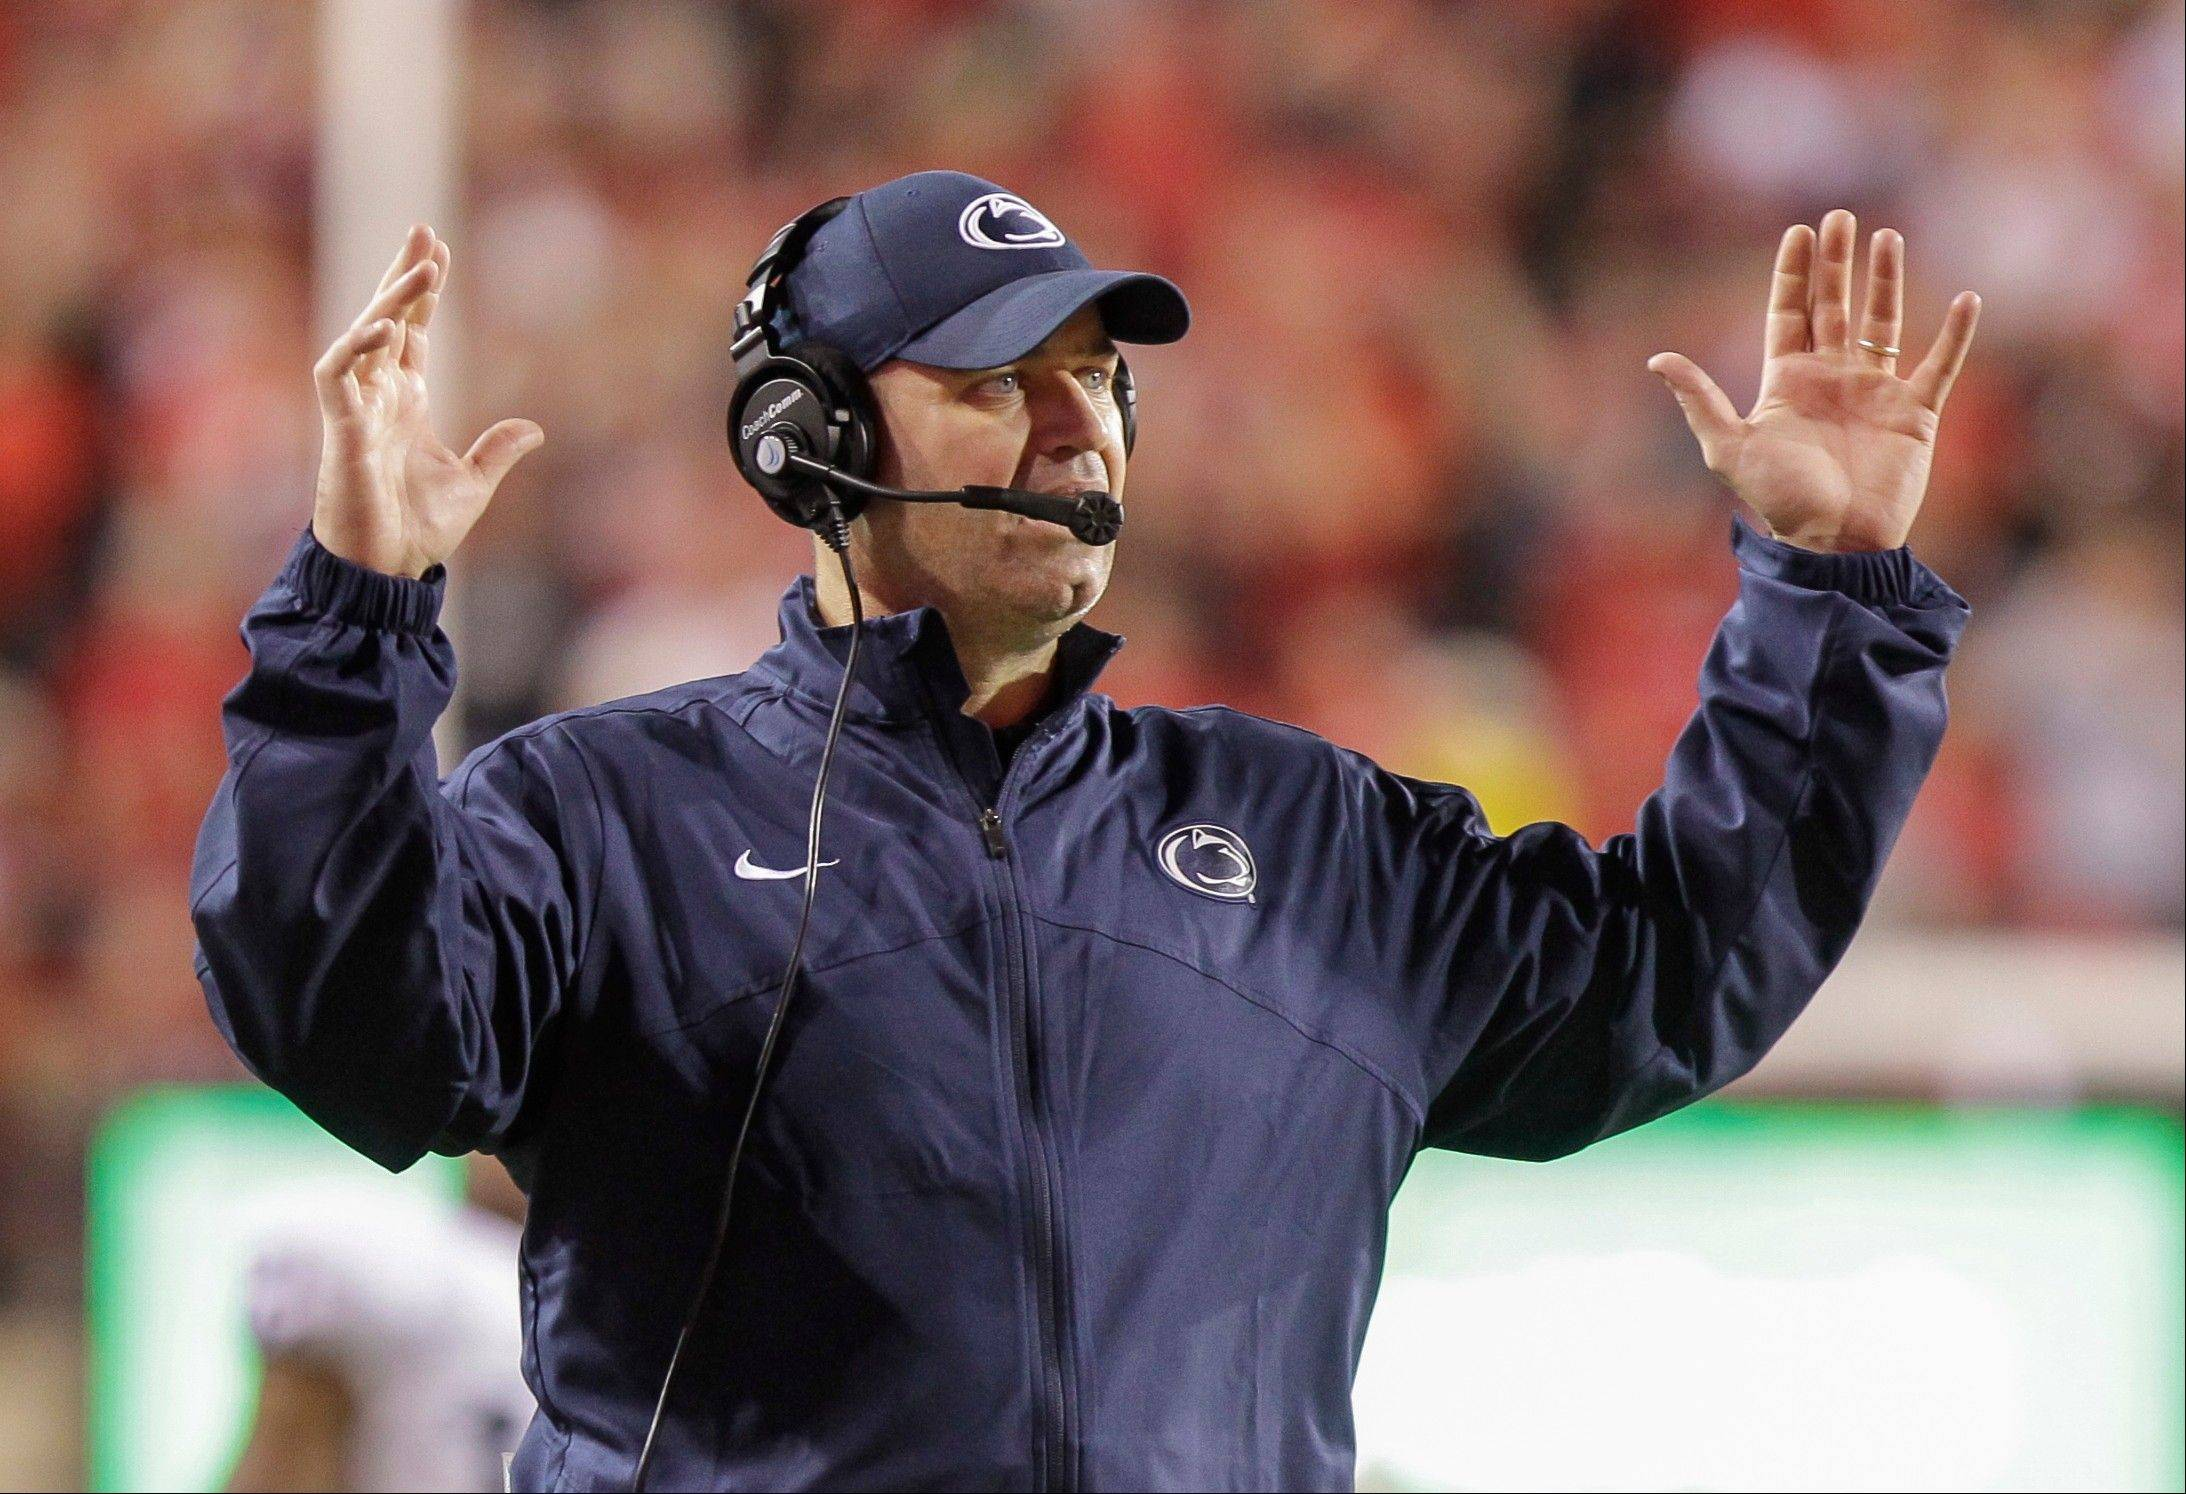 Penn State head coach Bill O'Brien on Tuesday was named the Big Ten's coach of the year, earning allocates from fellow coaches and the sportswriters reporting on the conference.